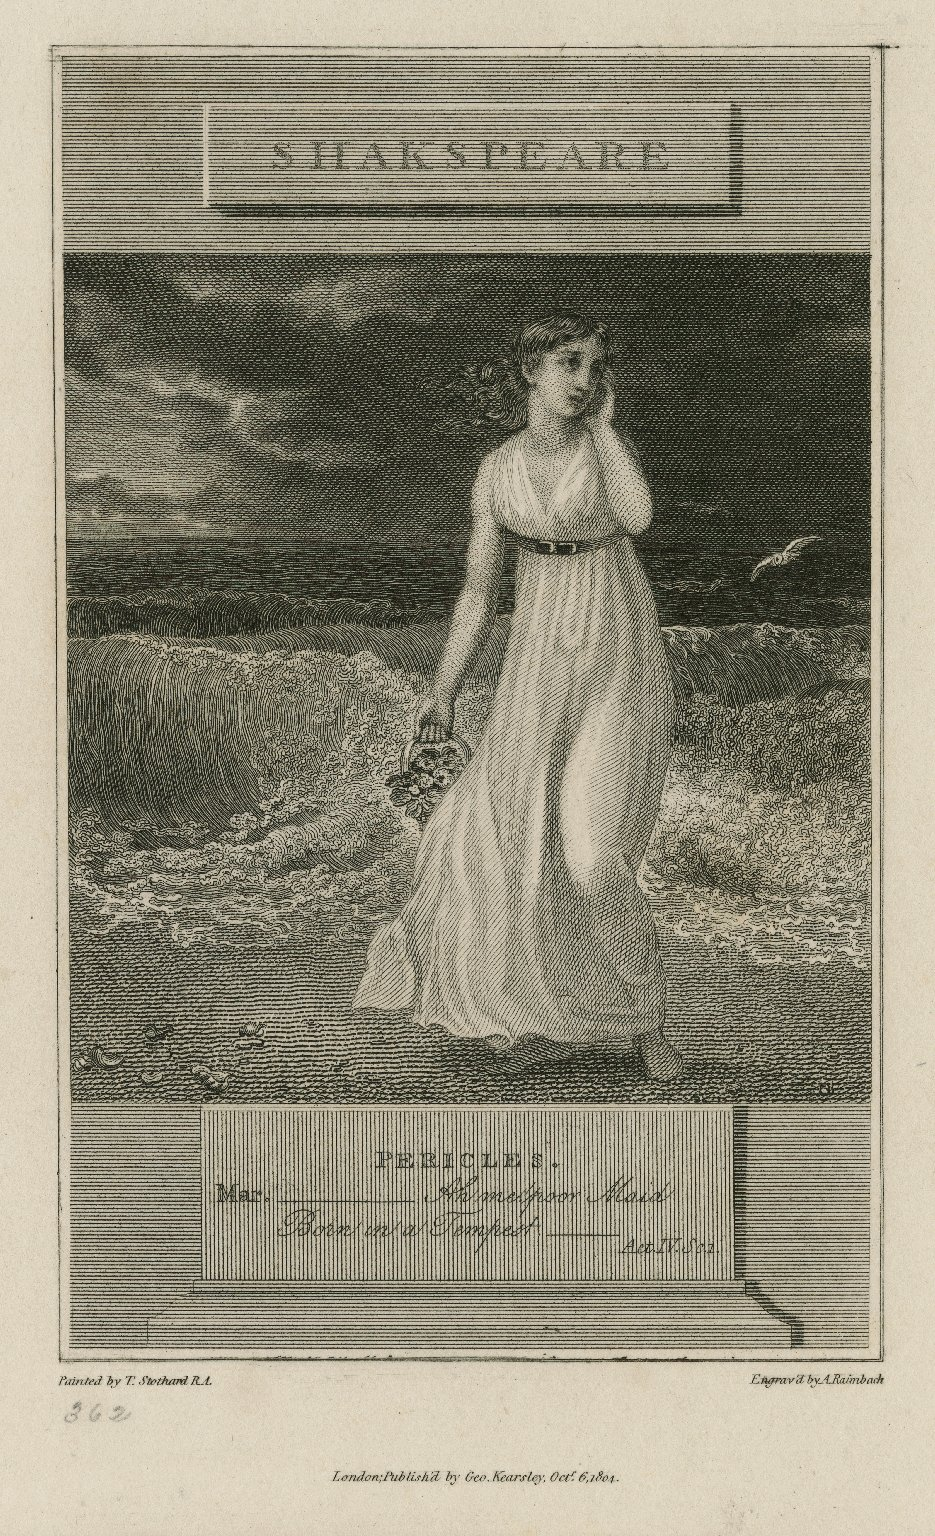 Pericles, Mar.--Ah me poor Maid, born in a tempest--act IV, sc. 1 [graphic] / painted by T. Stothard R.A. ; engraved by A. Raimbach.